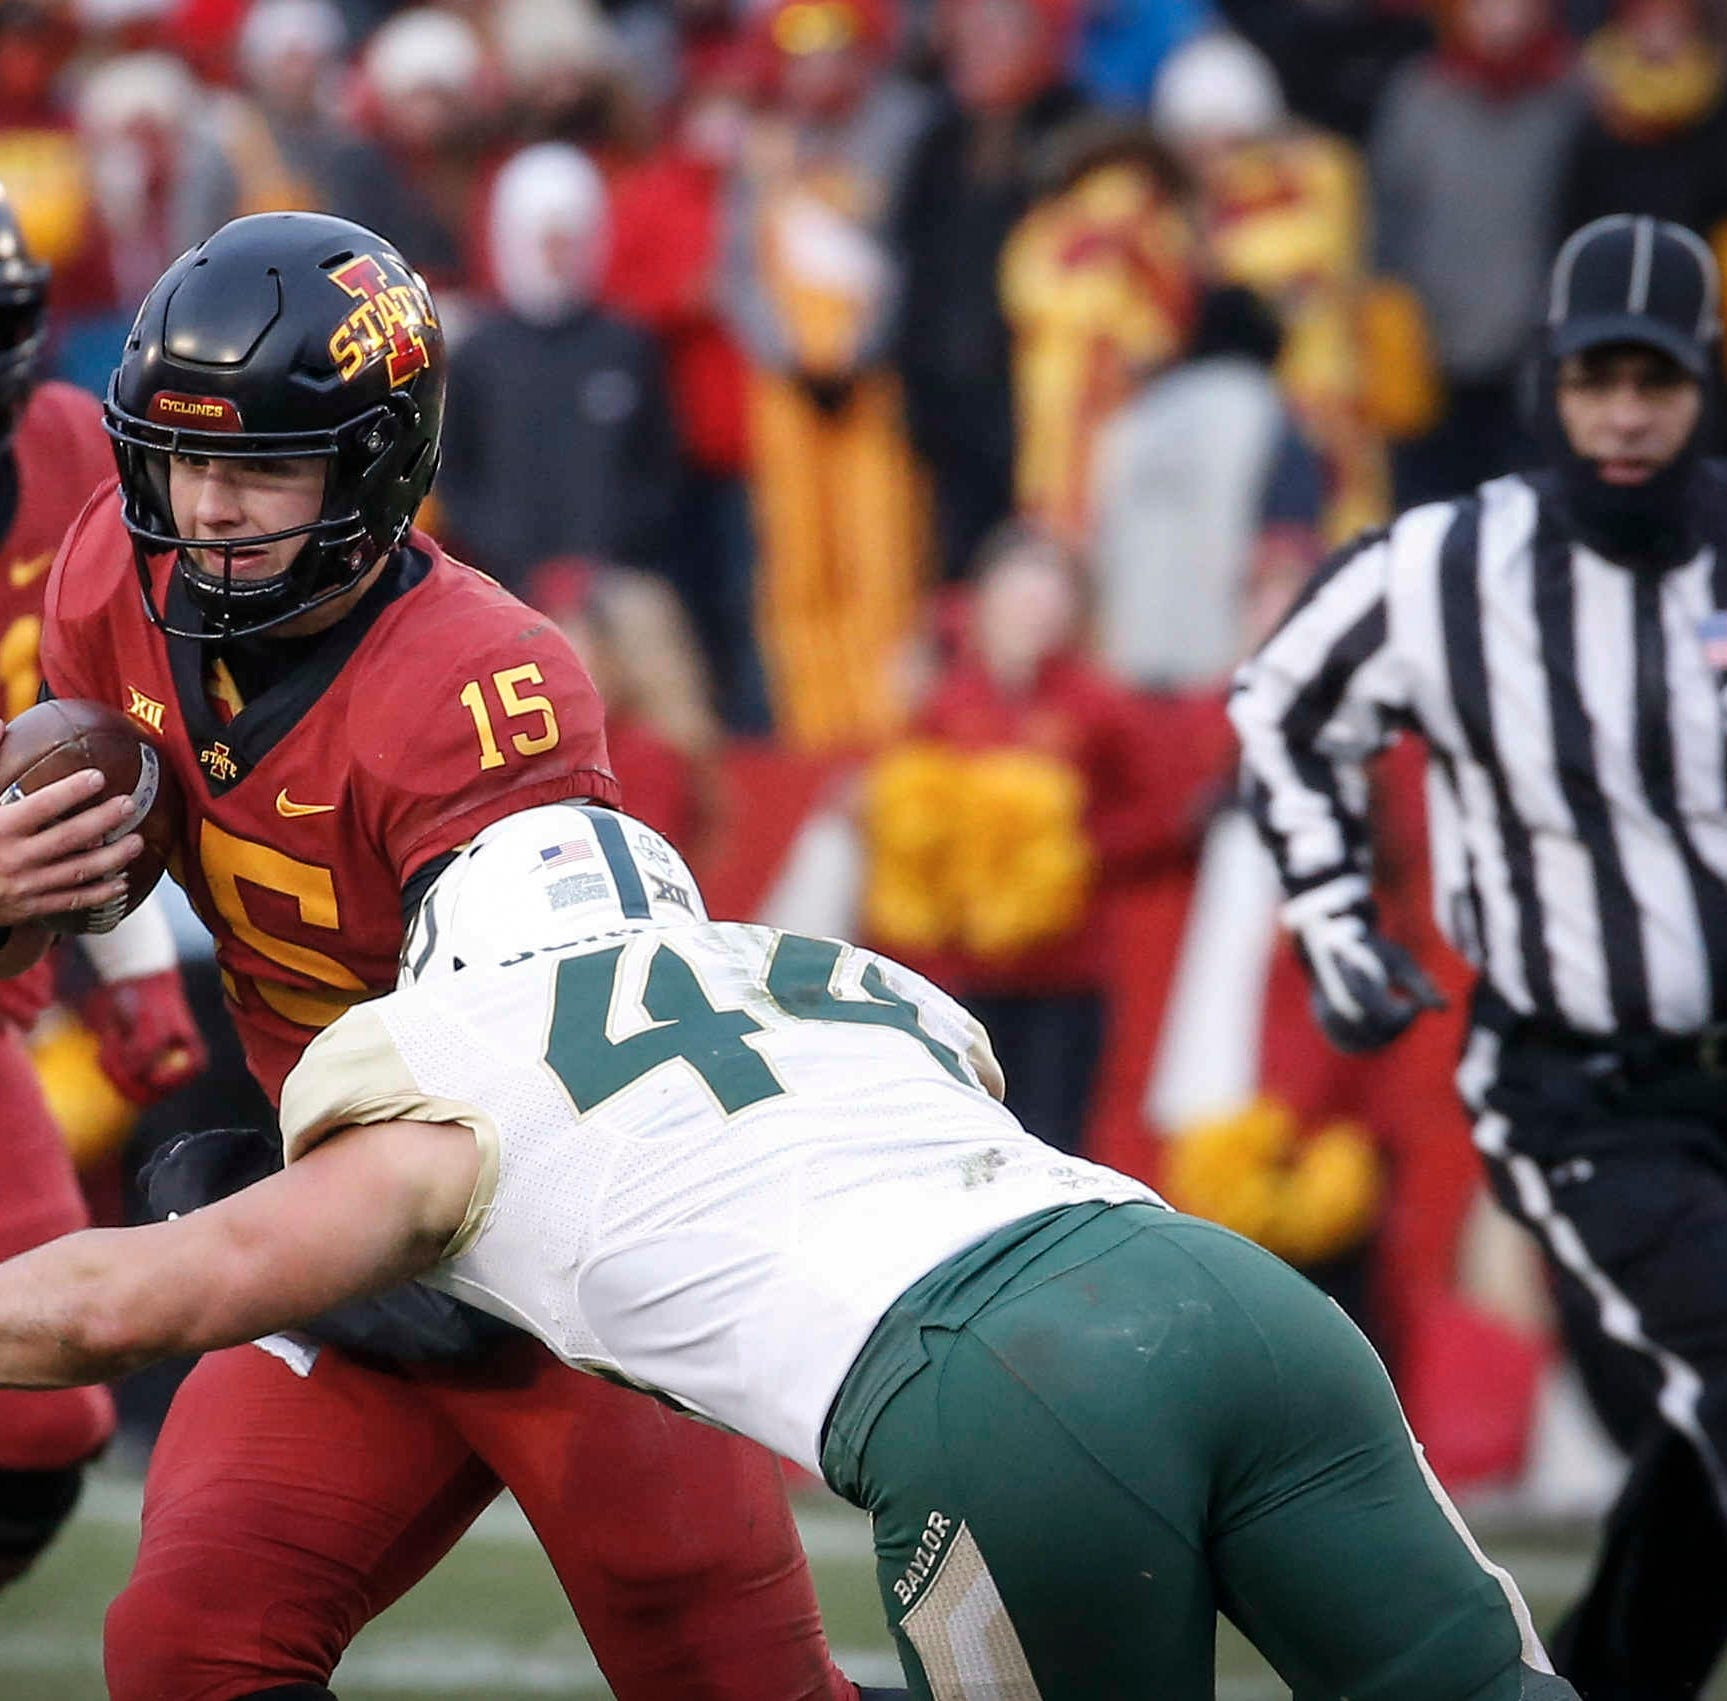 Iowa State offensive line fueled by doubters